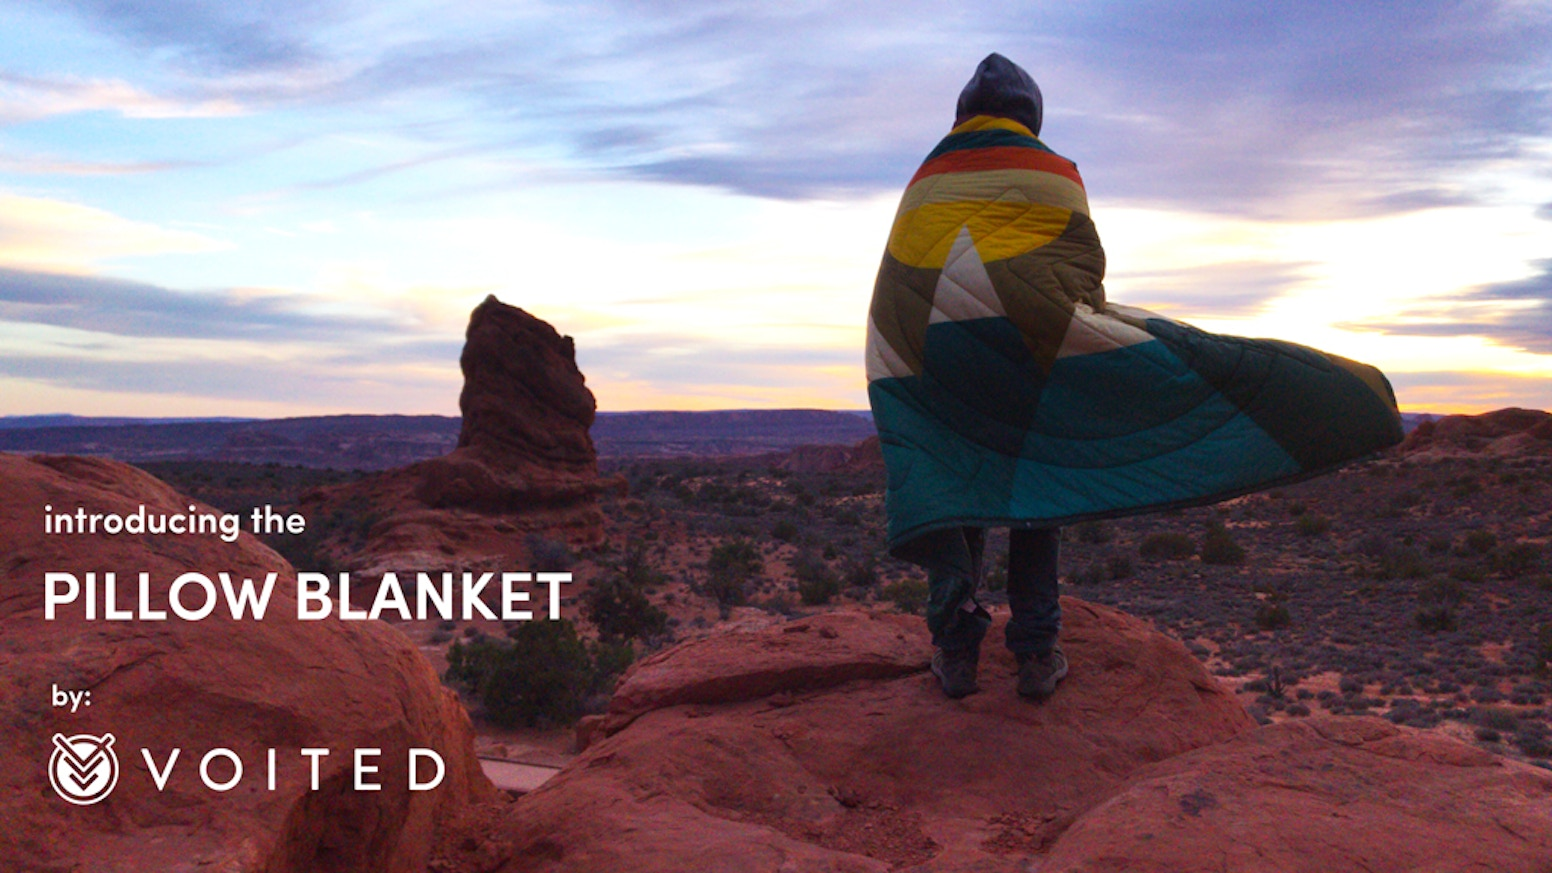 It starts as a pillow, transforms into a blanket, folds over into a sleep sack, and snaps to become a waterproof poncho.